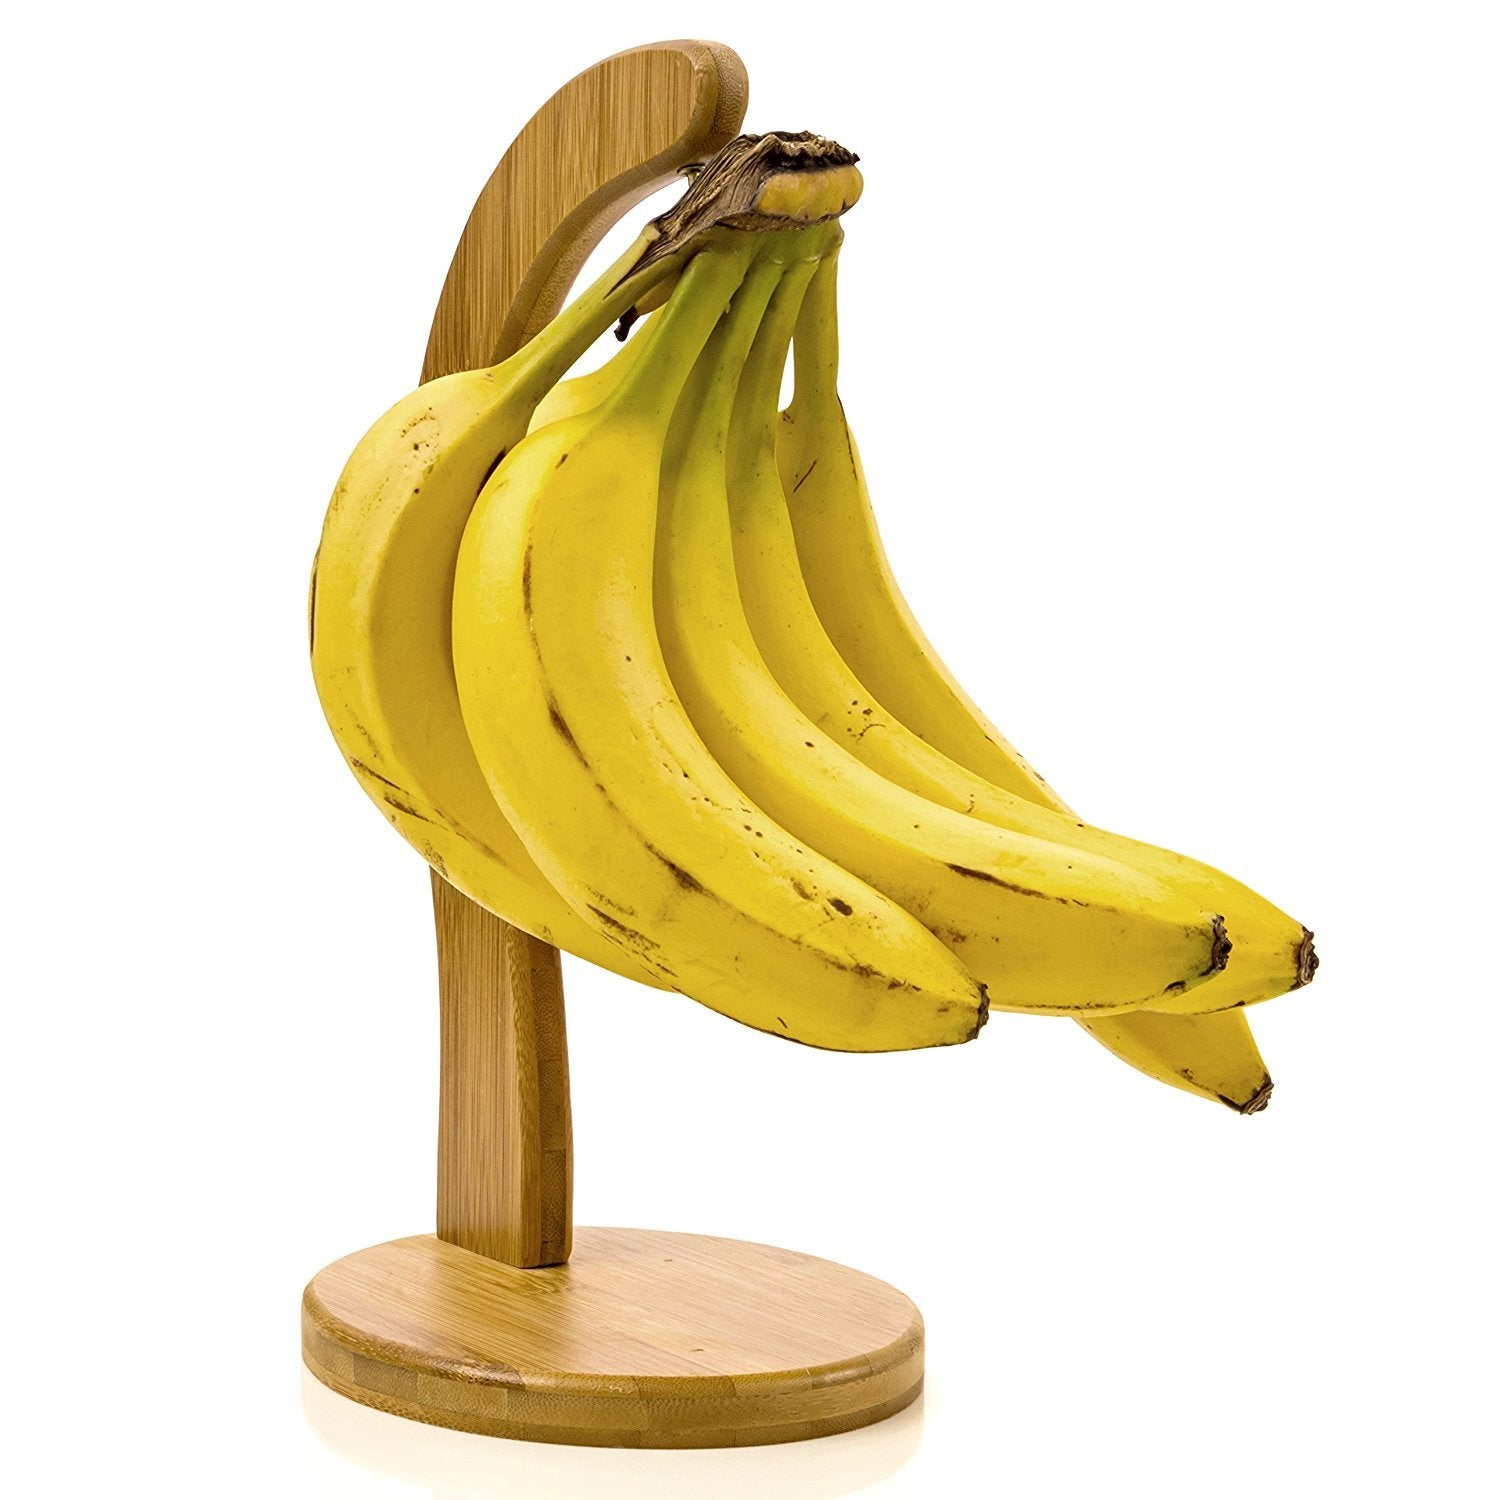 Banana Hanger Banana Hook-Holder Made of Organic Bamboo By Intriom Bamboo Collection